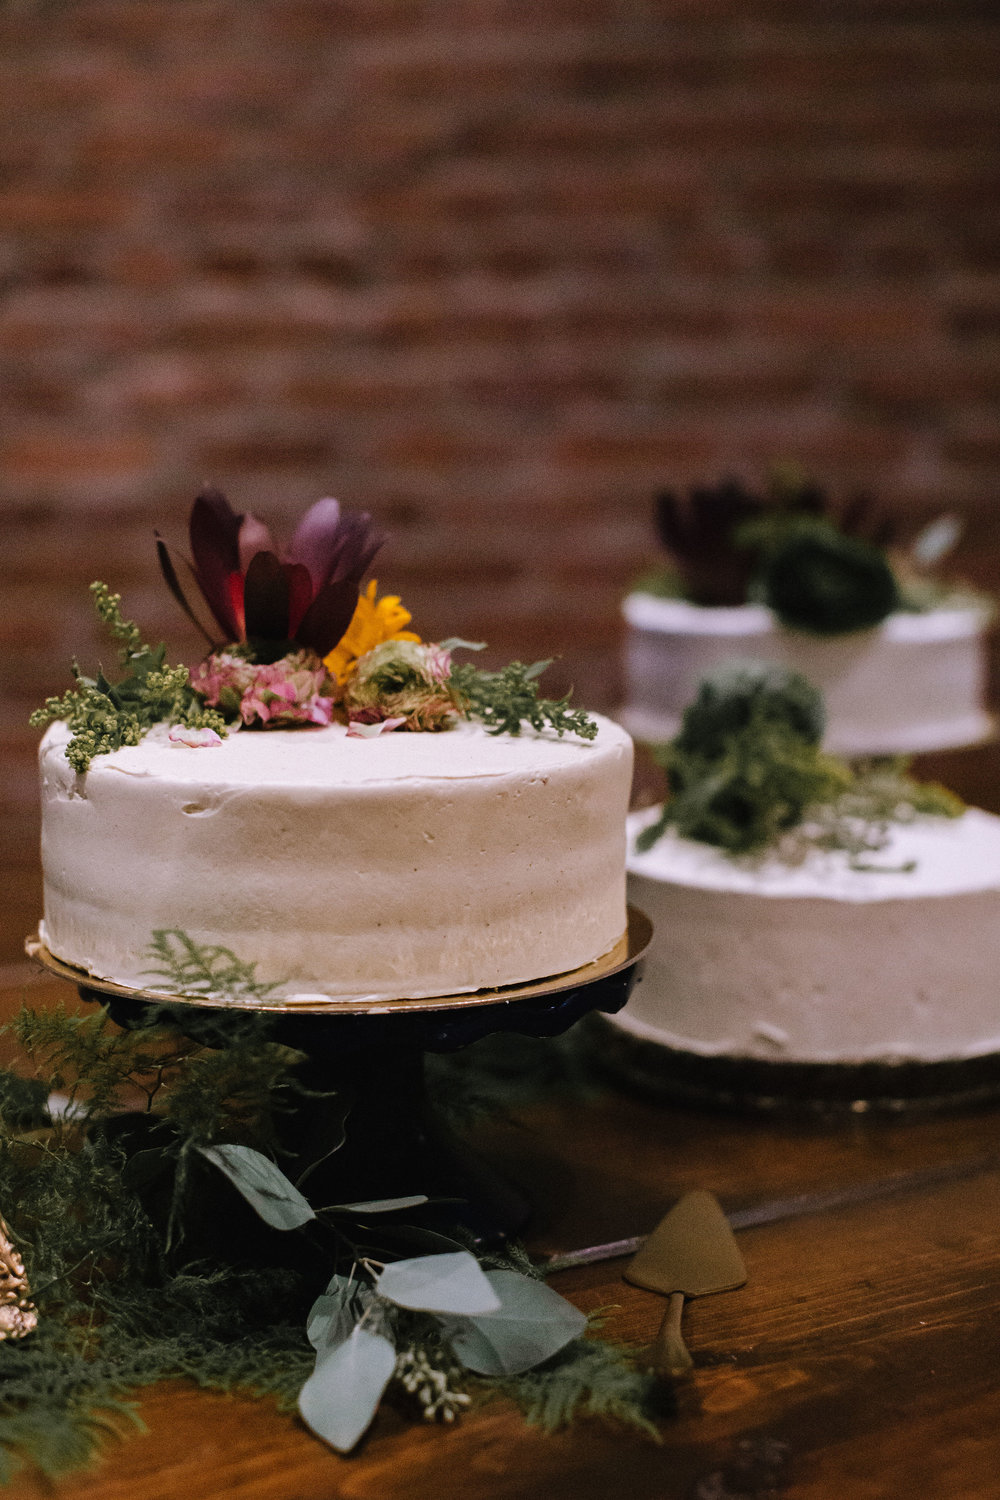 Multiple one tier wedding cakes for Pittsburgh wedding at Studio Slate planned by Exhale Events. Find more wedding inspiration at exhale-events.com!